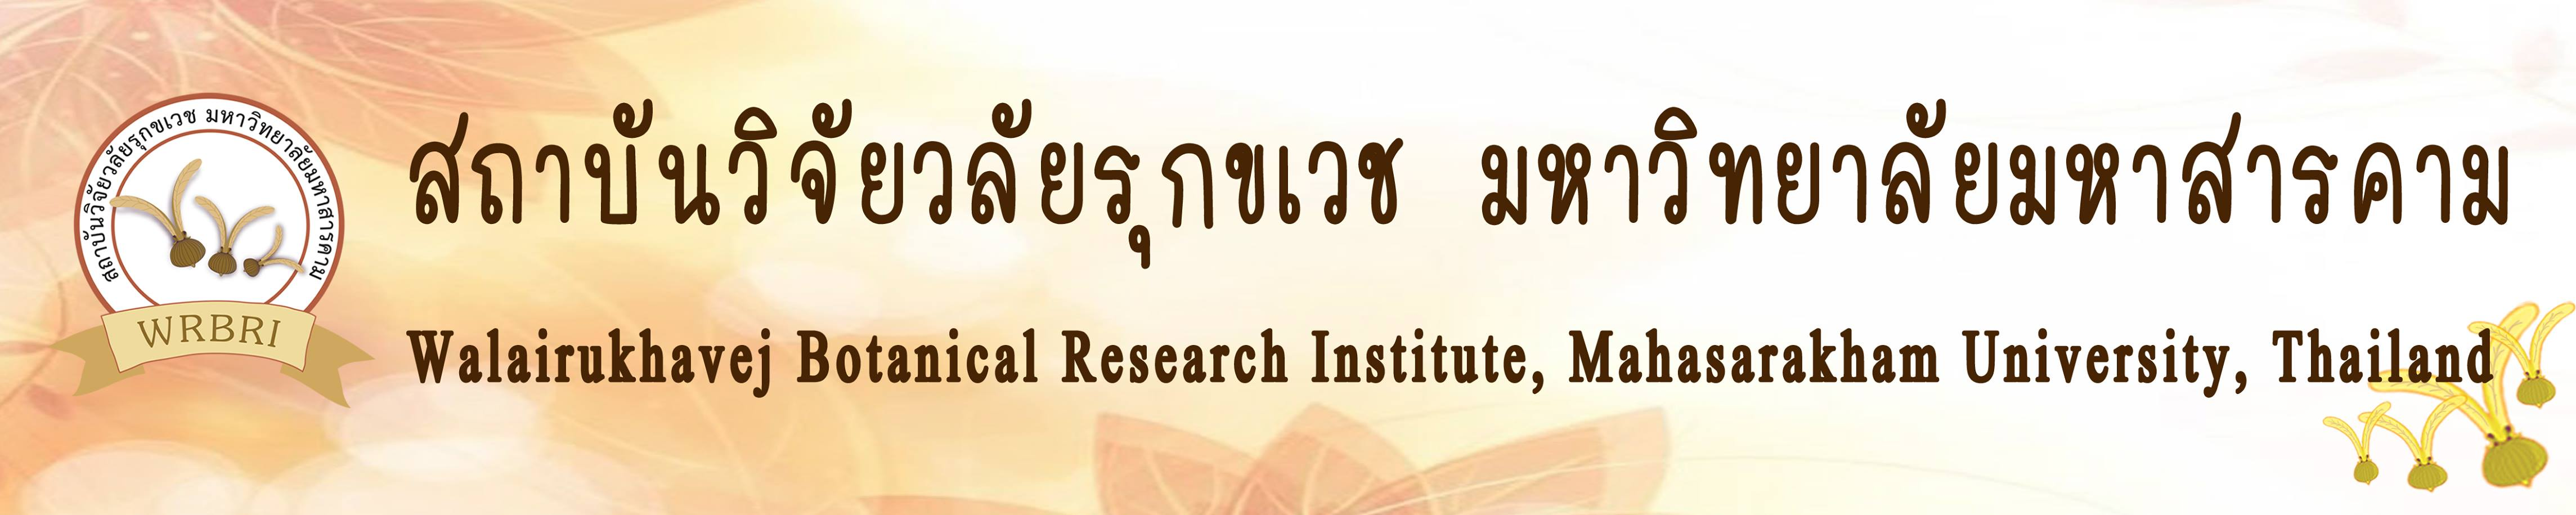 Walairukhavej Botanical Research Institute Mahasarakham University